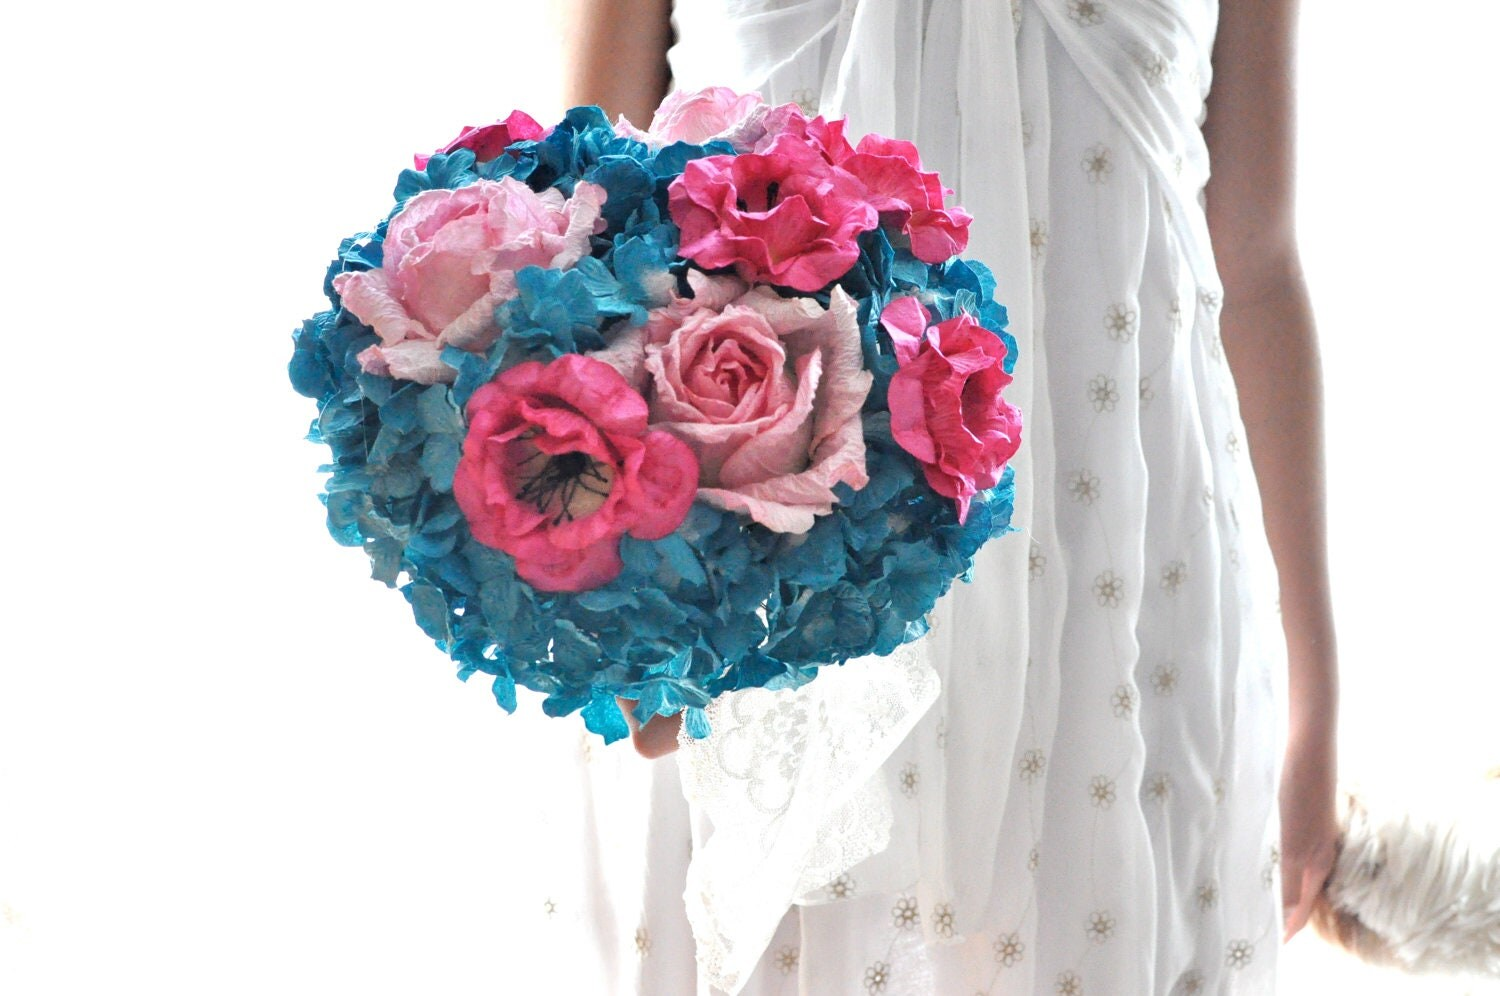 Turquoise Fuchsia Wedding: Bouquet Of Paper Flowers. Teal And Hot Pink Wedding Flowers